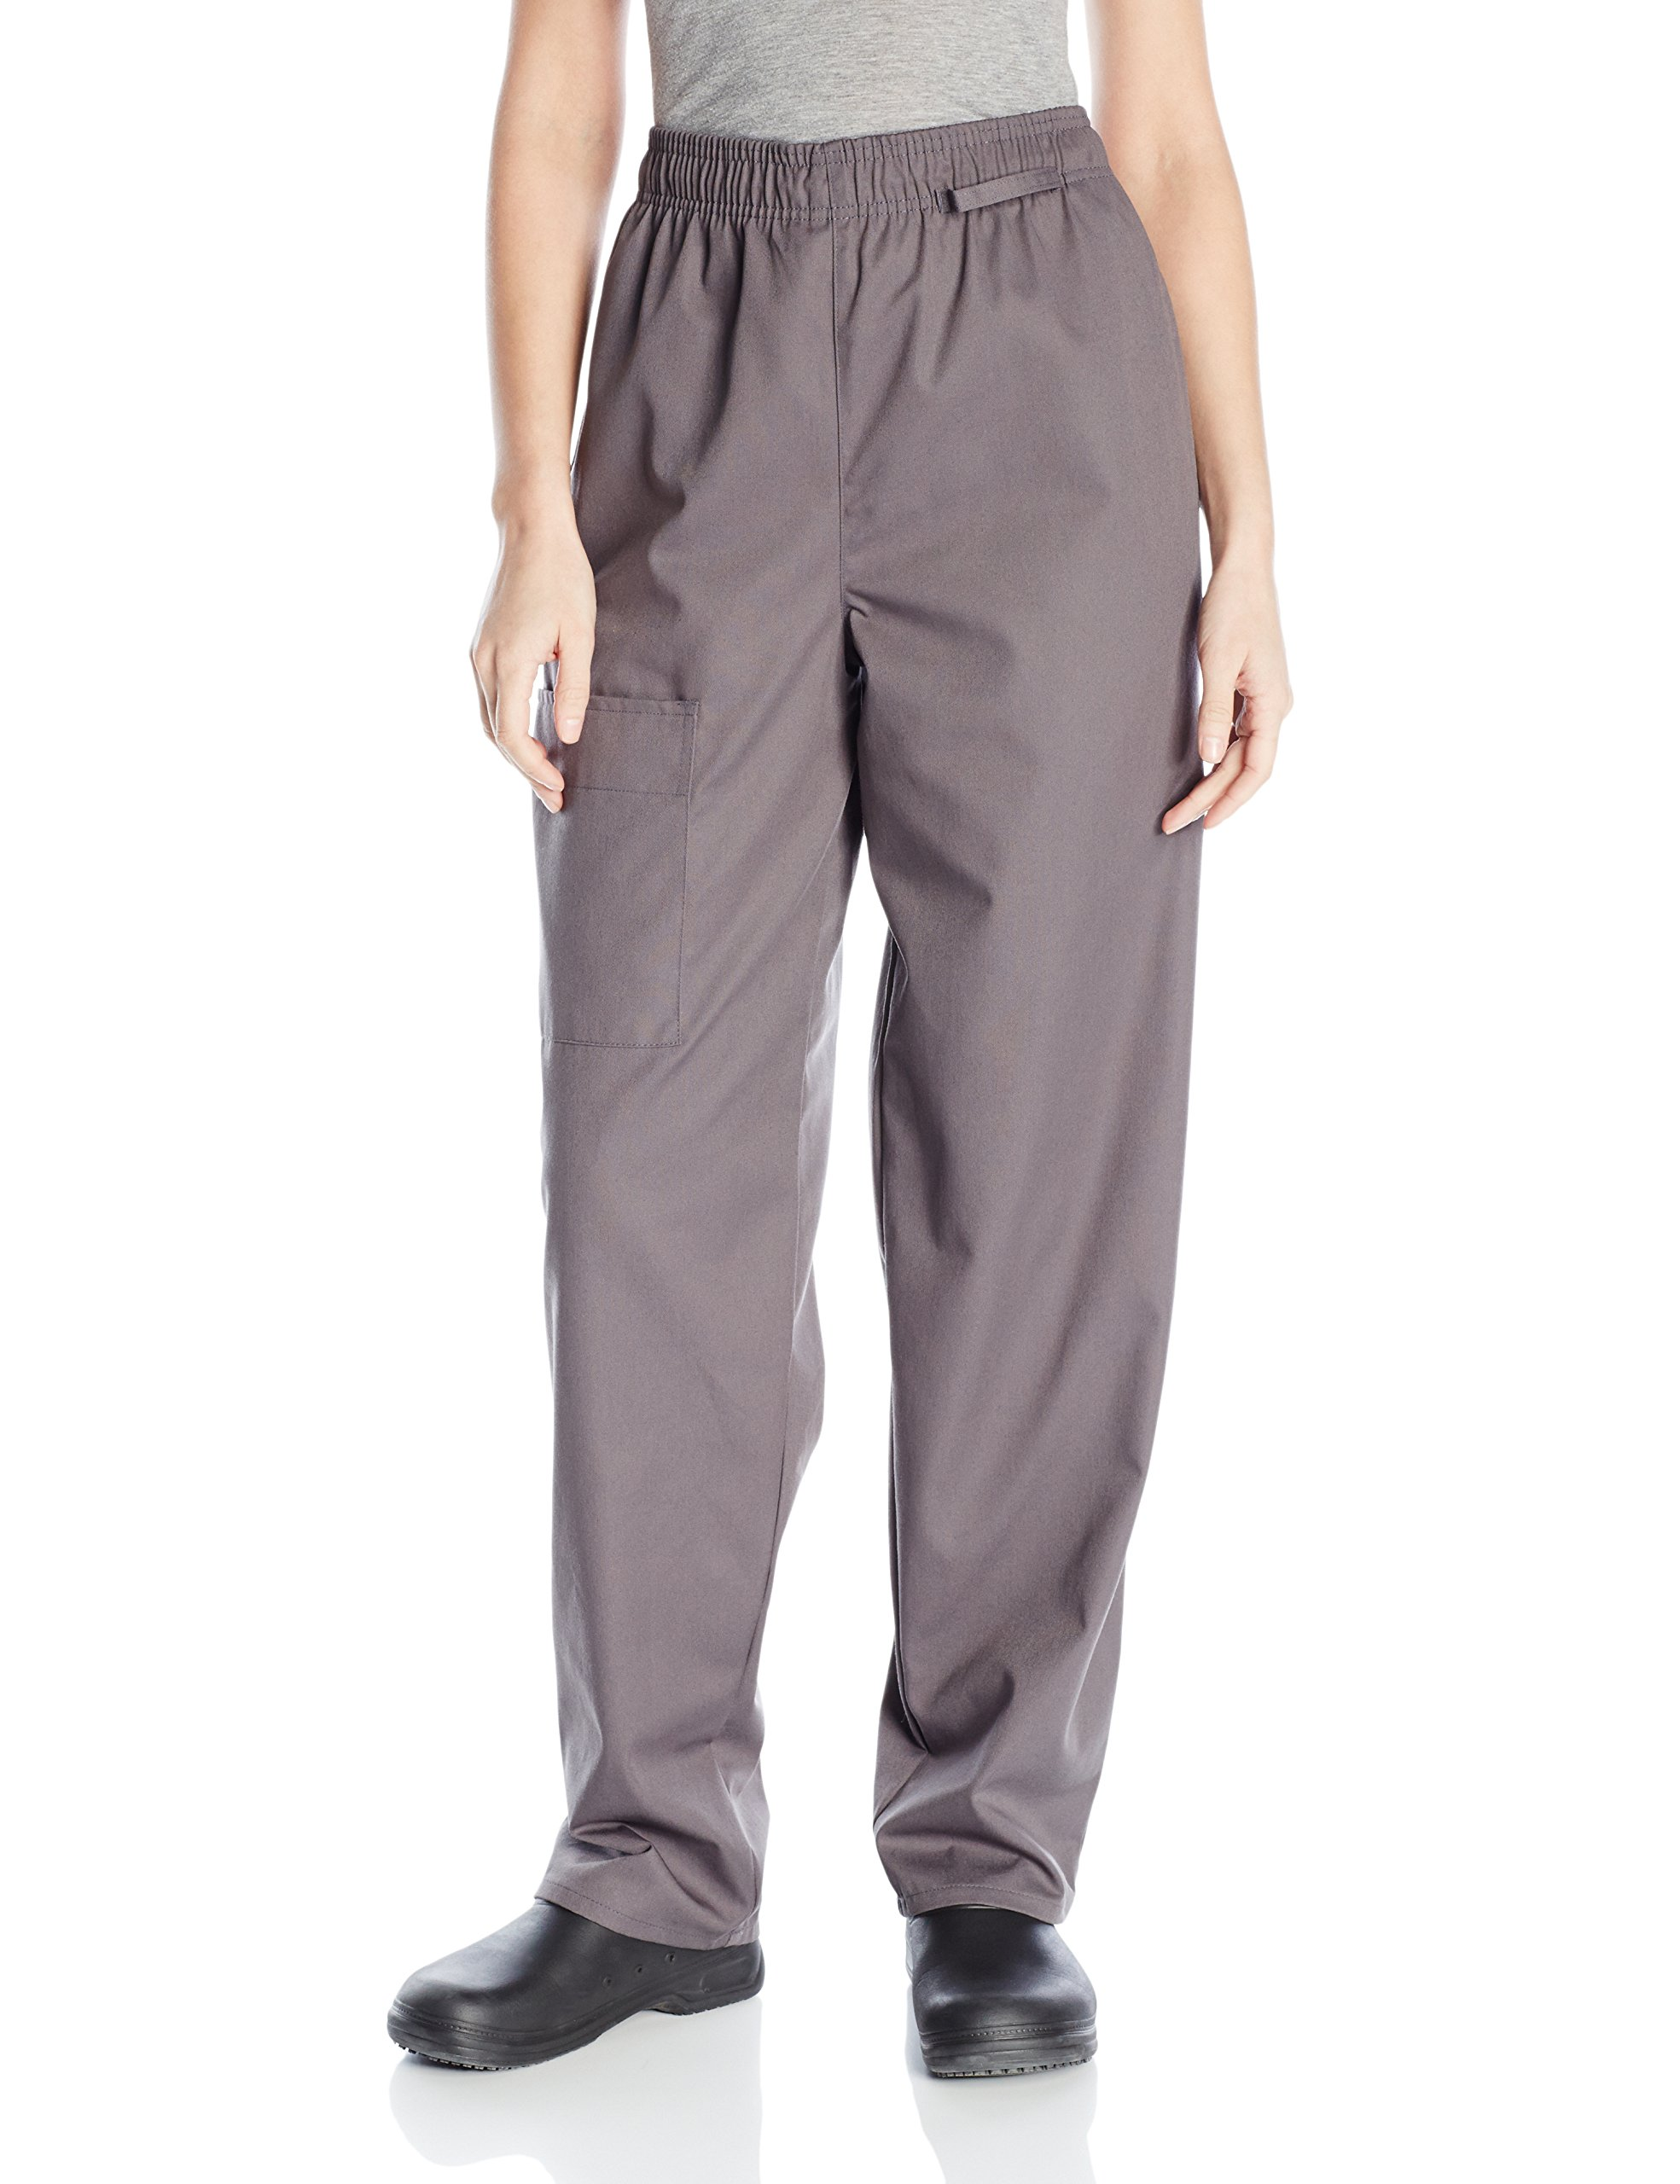 Uncommon Threads Unisex Cargo Chef Pant,Slate,2X-Large by Uncommon Threads